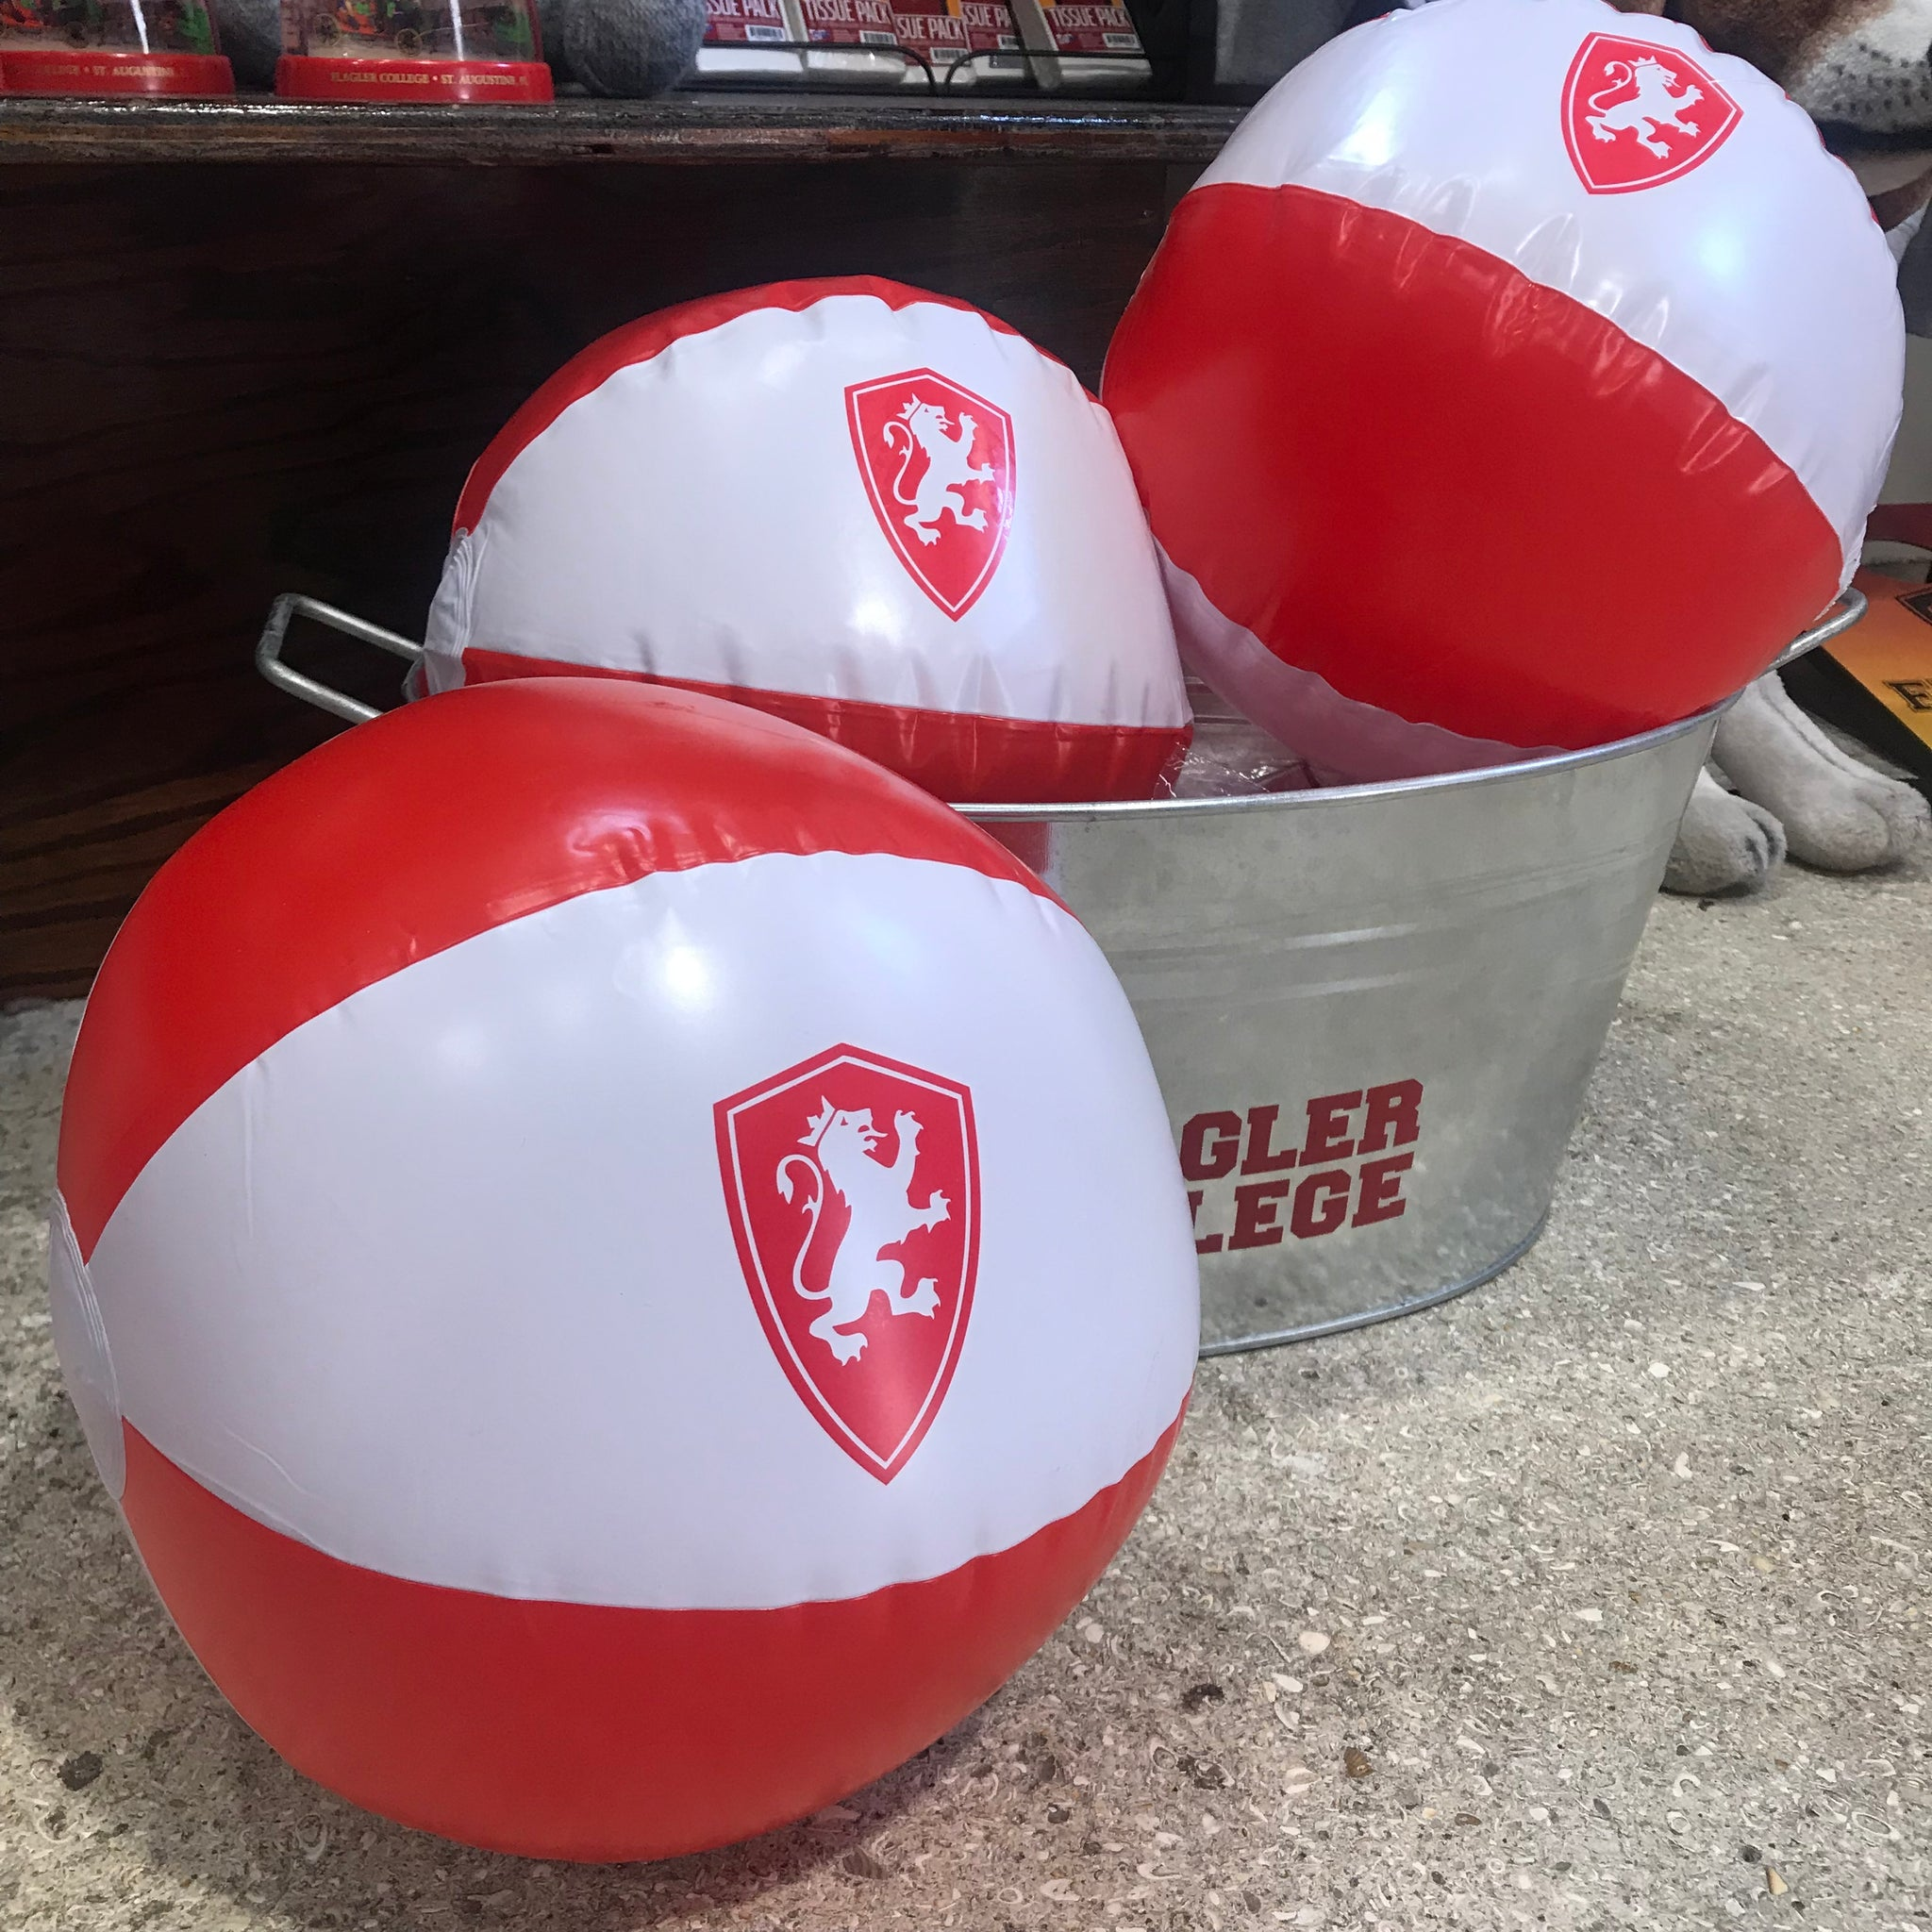 red and white beach ball with red lion shield